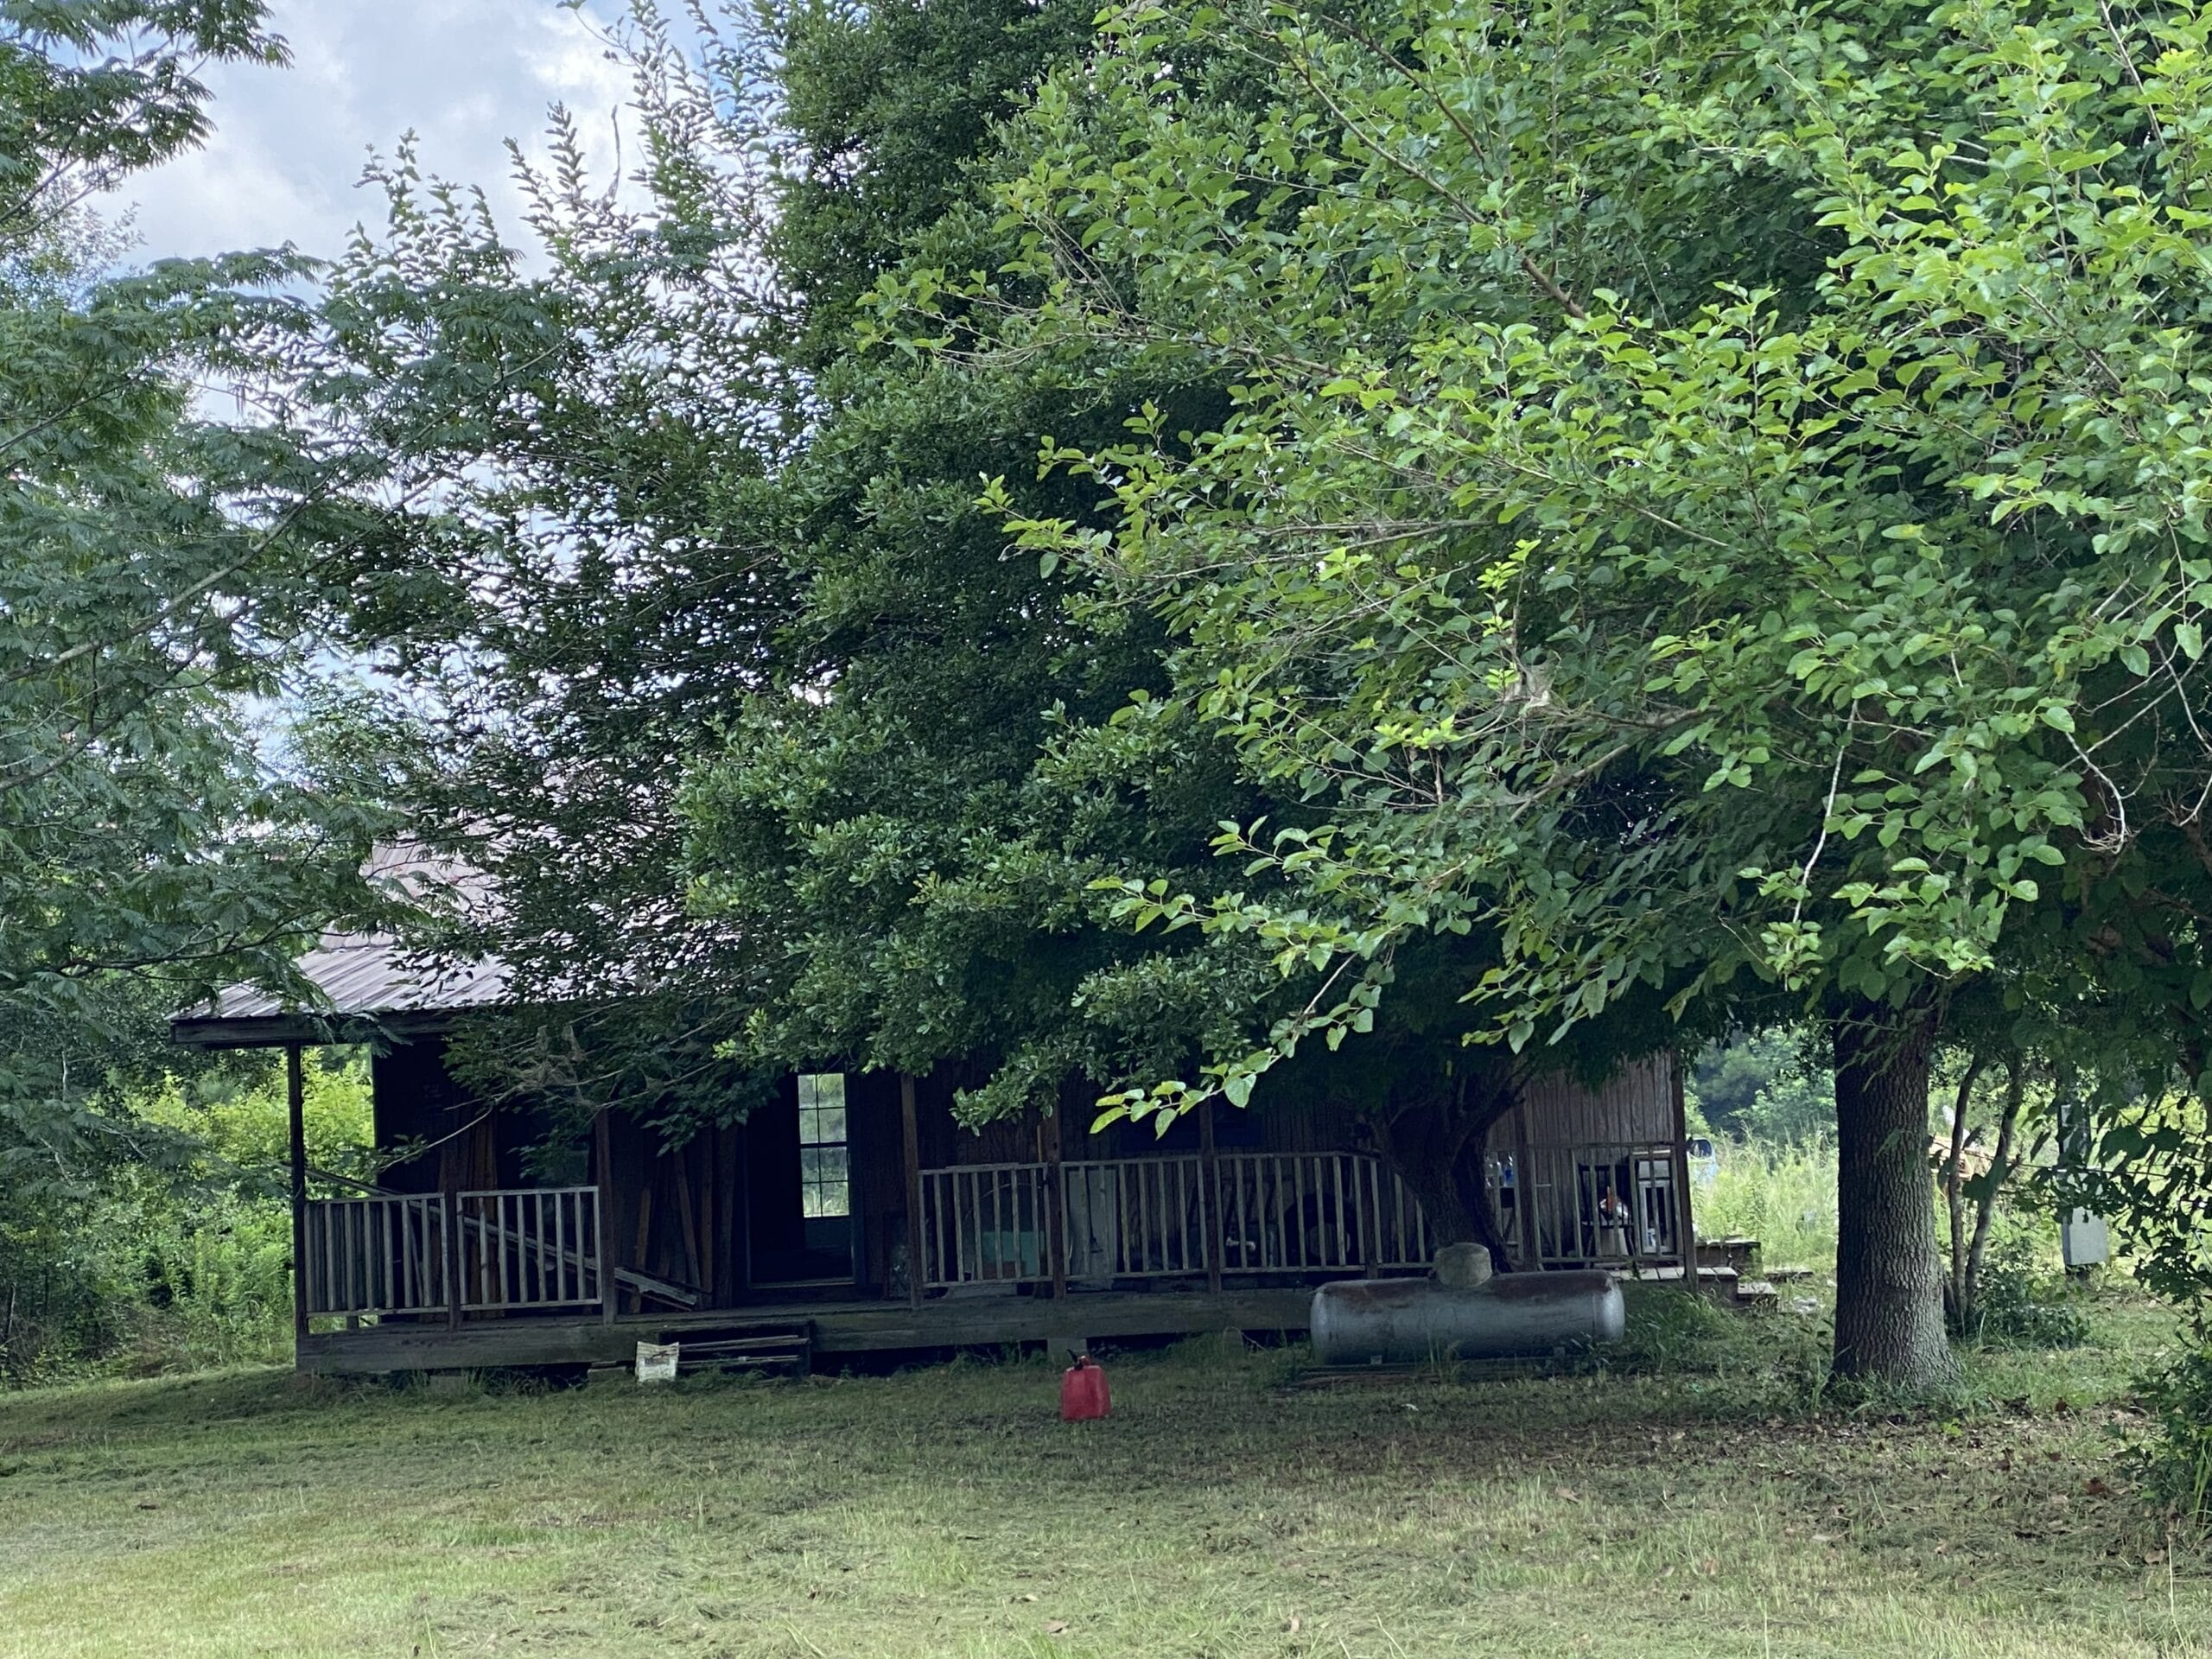 2 bedroom 1 bath house on almost 4 acres** PRICE IS NEGOTIABLE**.